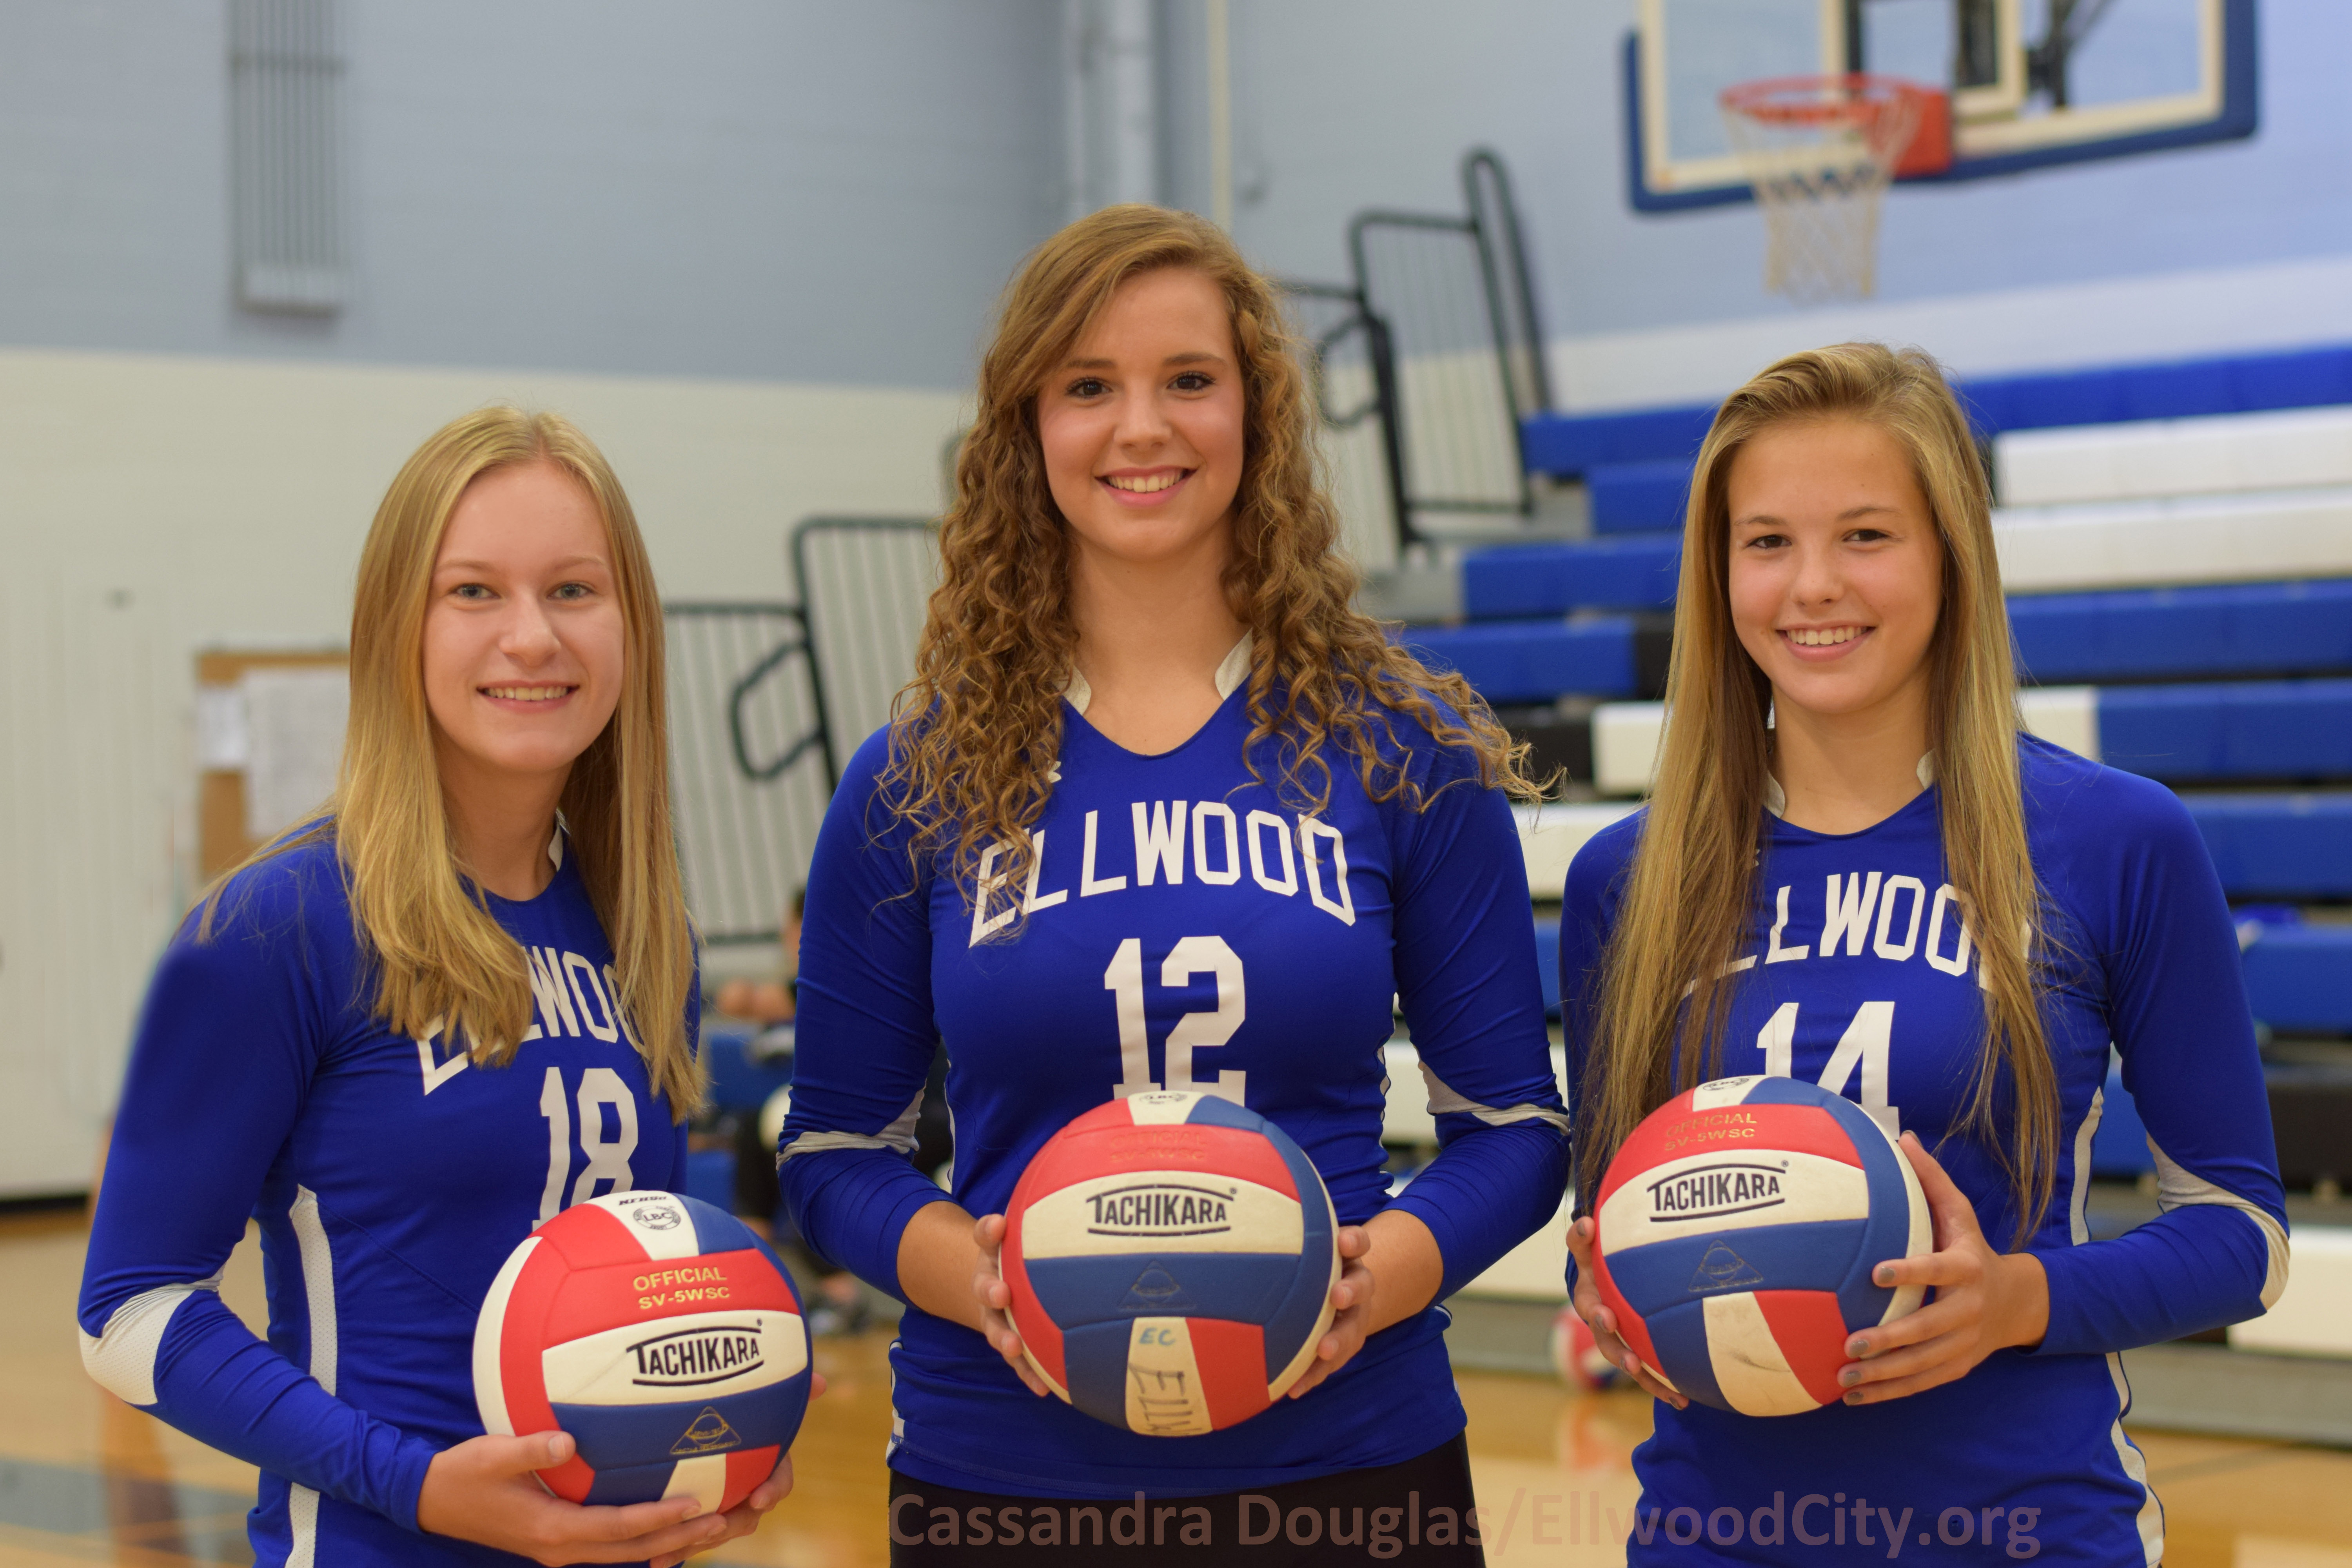 Left to right: Megan Sigfried, Erica Walley, Brooklyn Magill